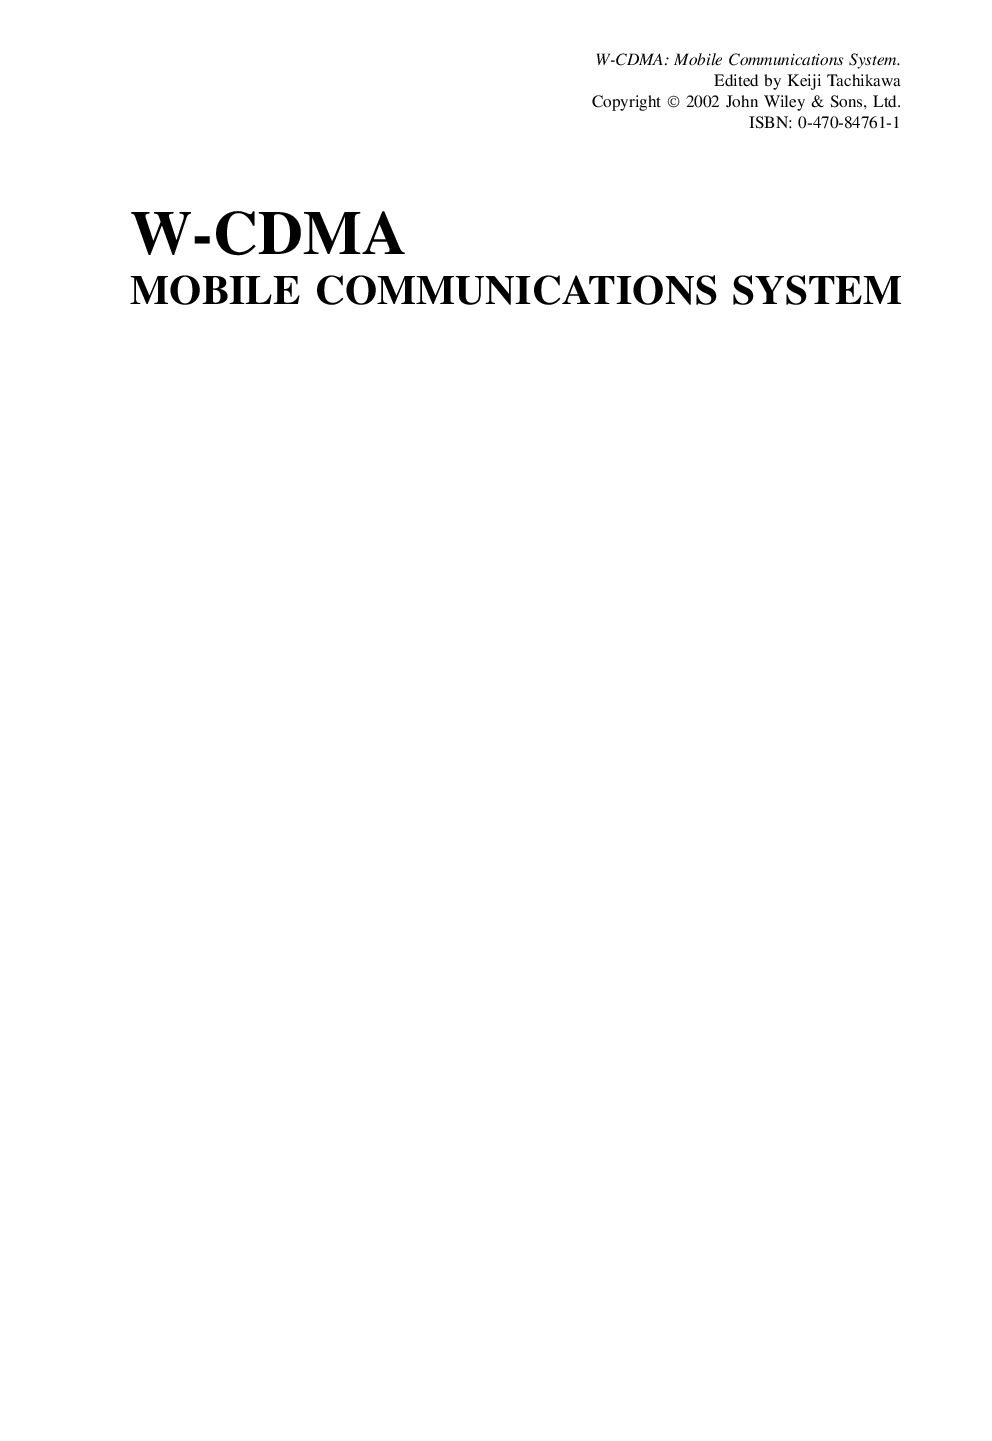 Wcdma Mobile Communications System Pdf Download Service Manual Repair Manual Pdf Download Communication System Communications Pdf Download